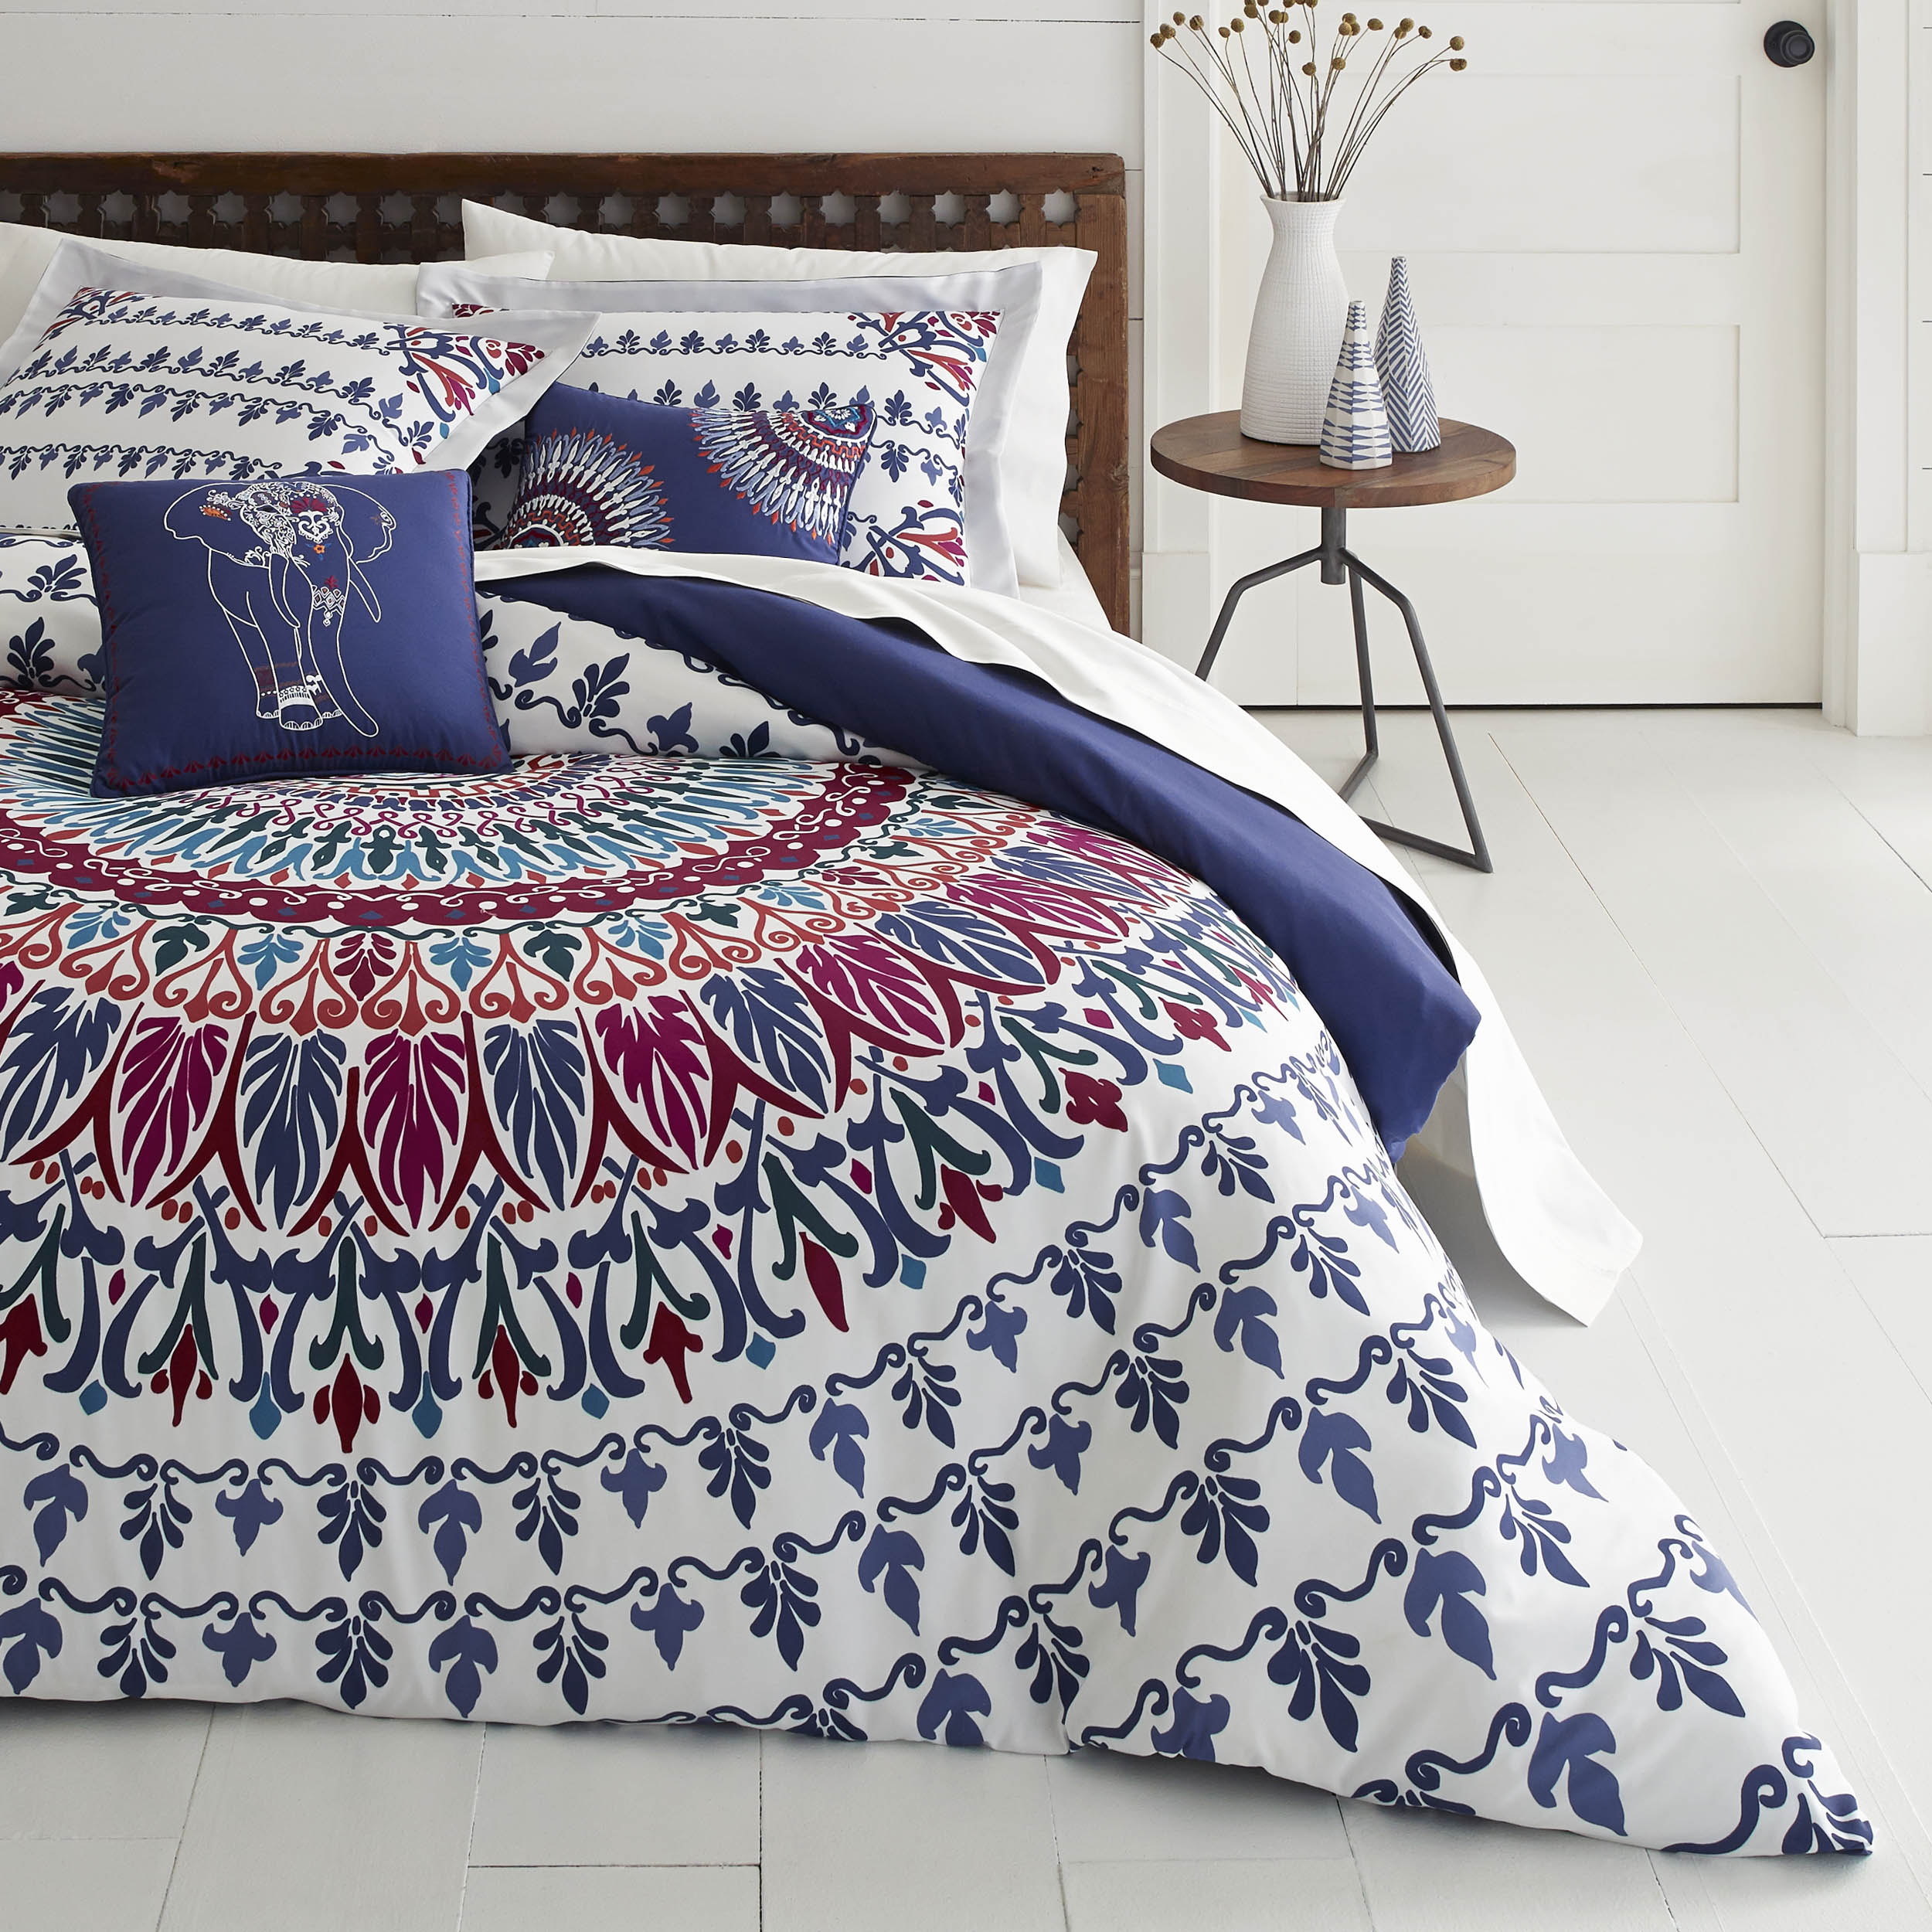 Azalea Skye Hanna Medallion Navy Duvet Cover Set, Full/Queen